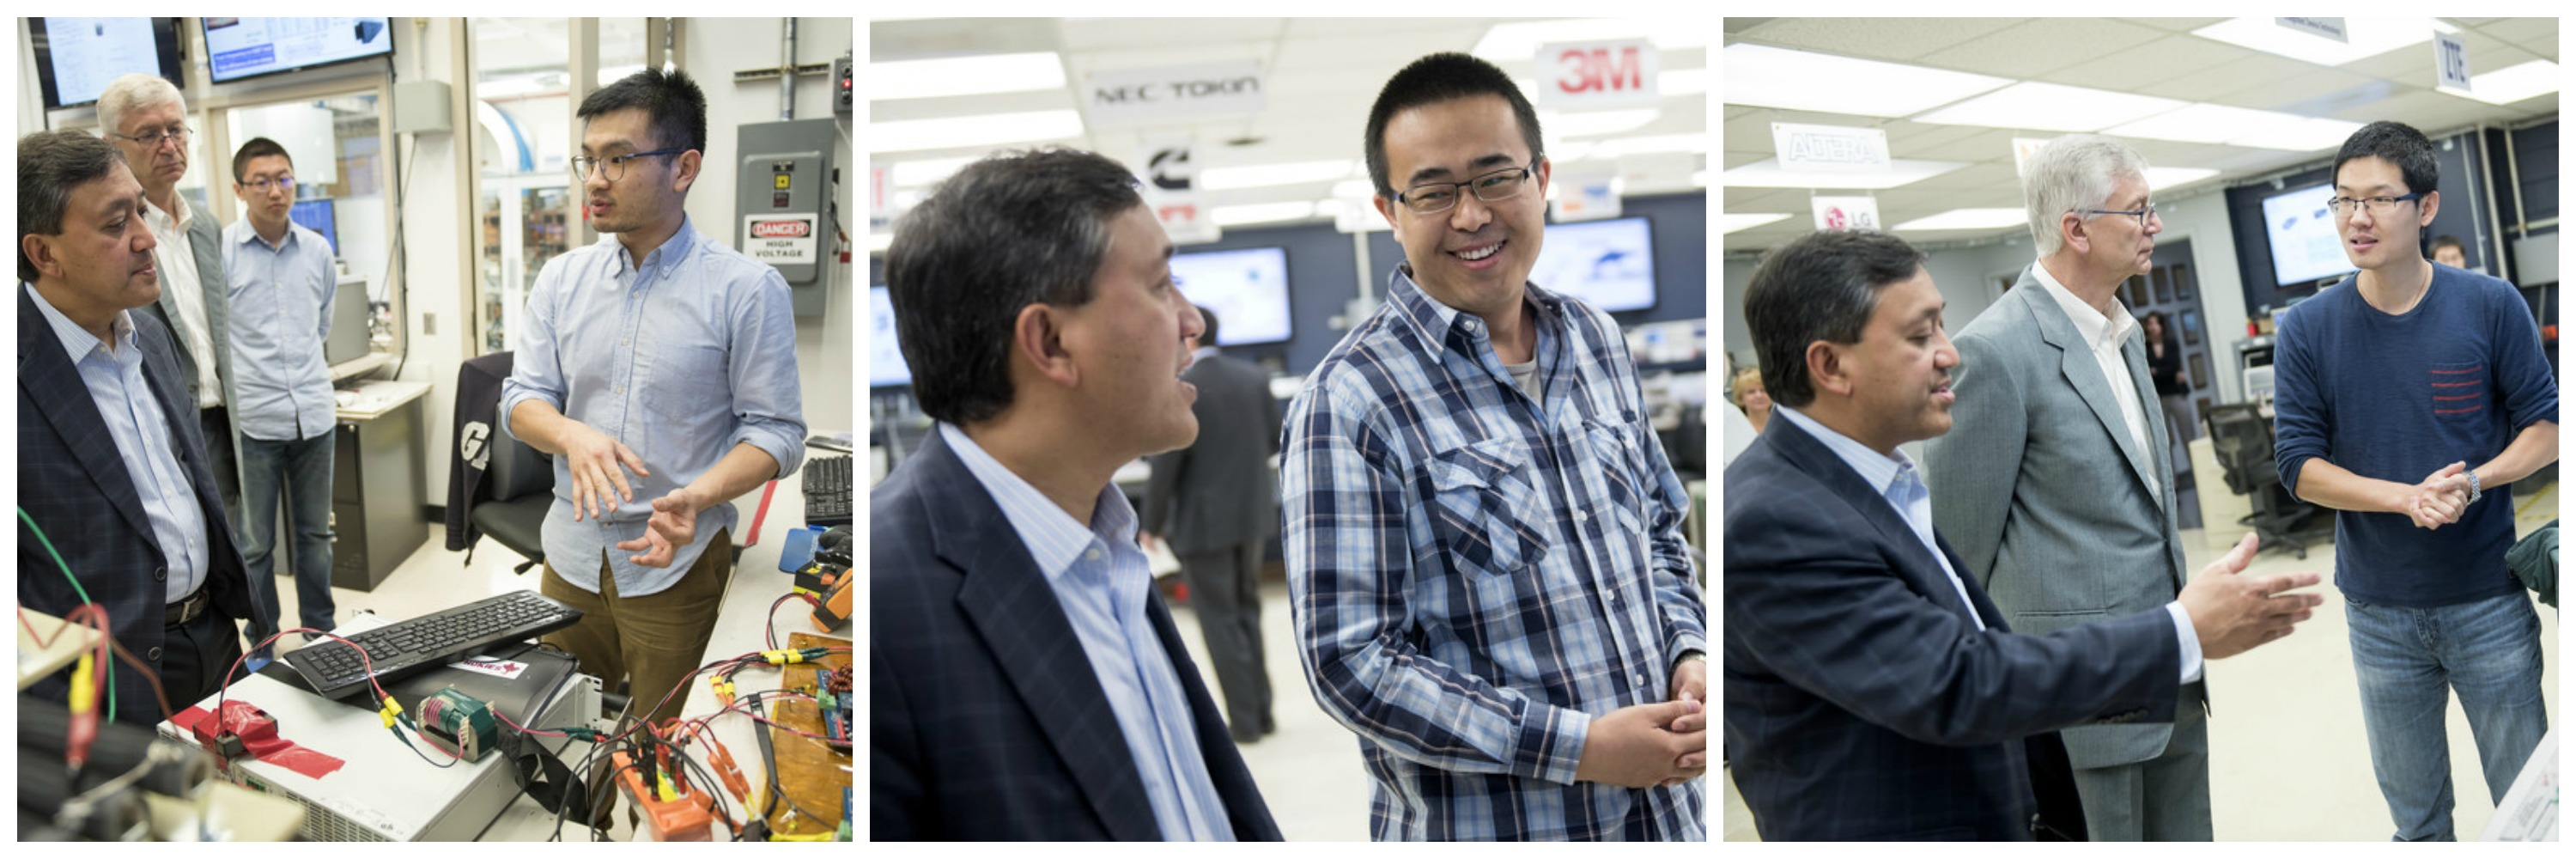 Image of David Parekh and Vlado Blasko from United Technolgies Research Center tour the CPES Lab. CPES students and scholars from left: Bo Wen, Qiong Wang, Chao Fei, and Bin Li.